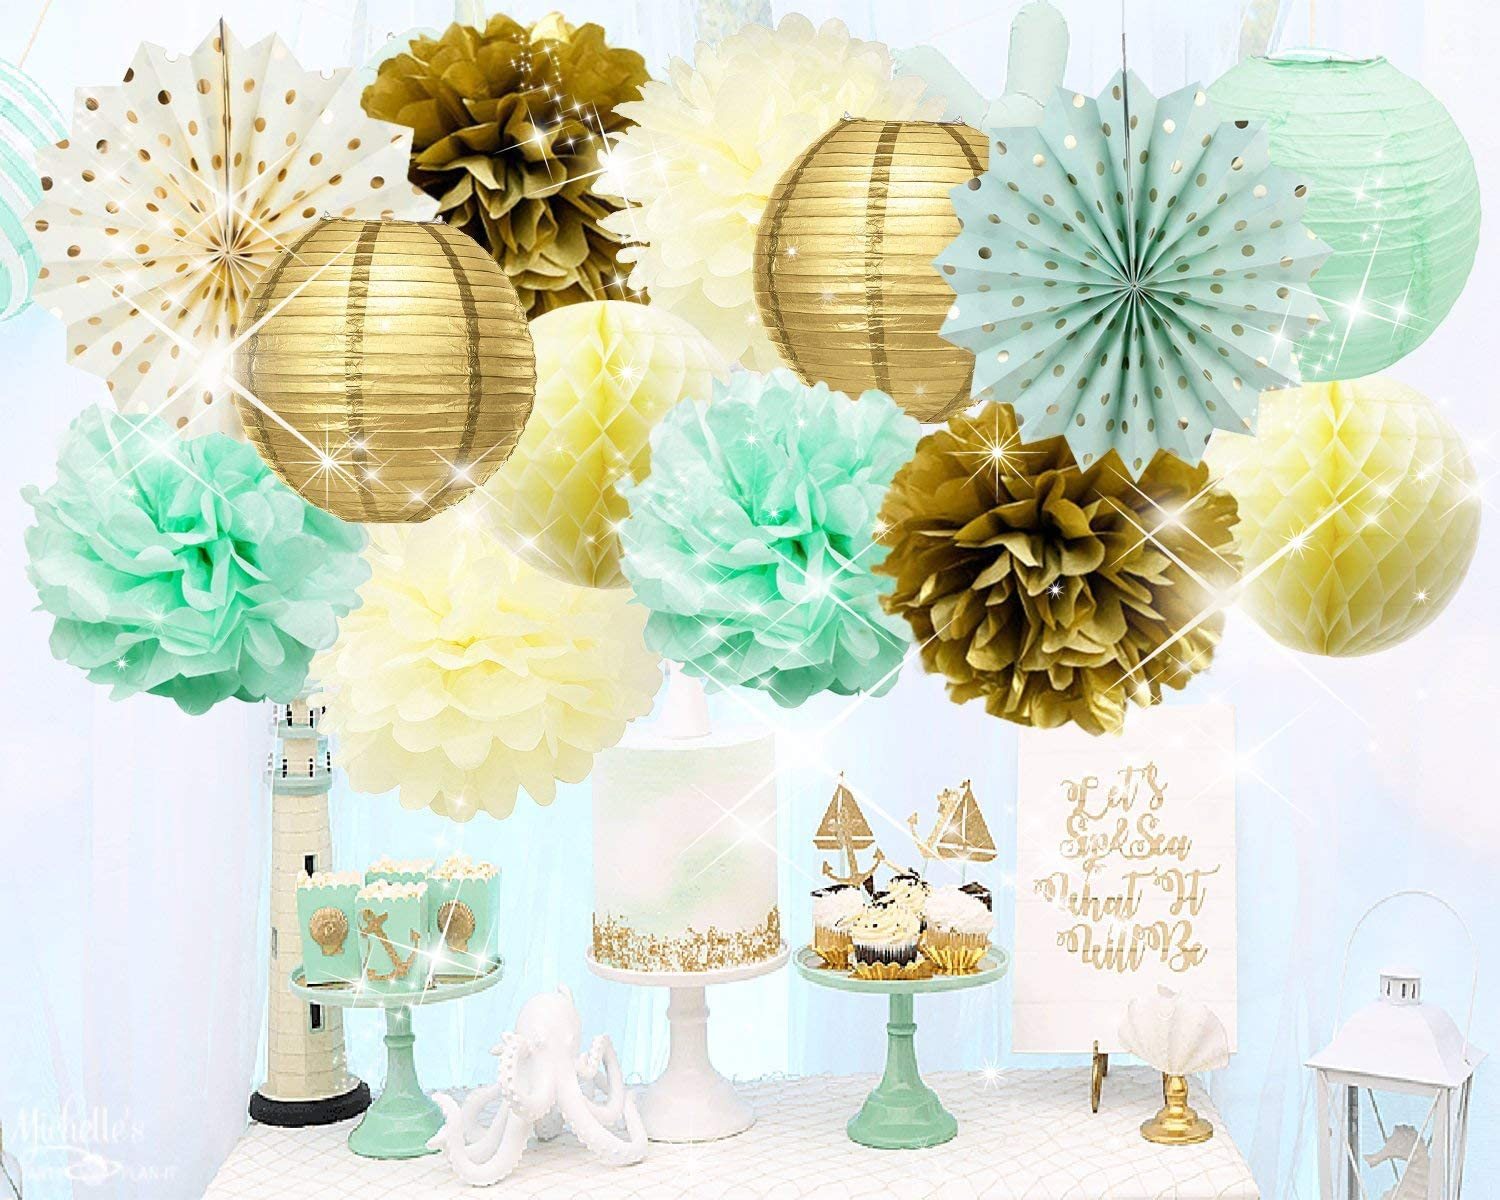 Qian's Party Mint Gold Birthday Decorations Mint Cream Gold Polka Dot Paper Fan for Gender Neutral Baby Shower Decor/Trial Baby Shower Decorations Mint Gold First Birthday Bridal Shower Decorations